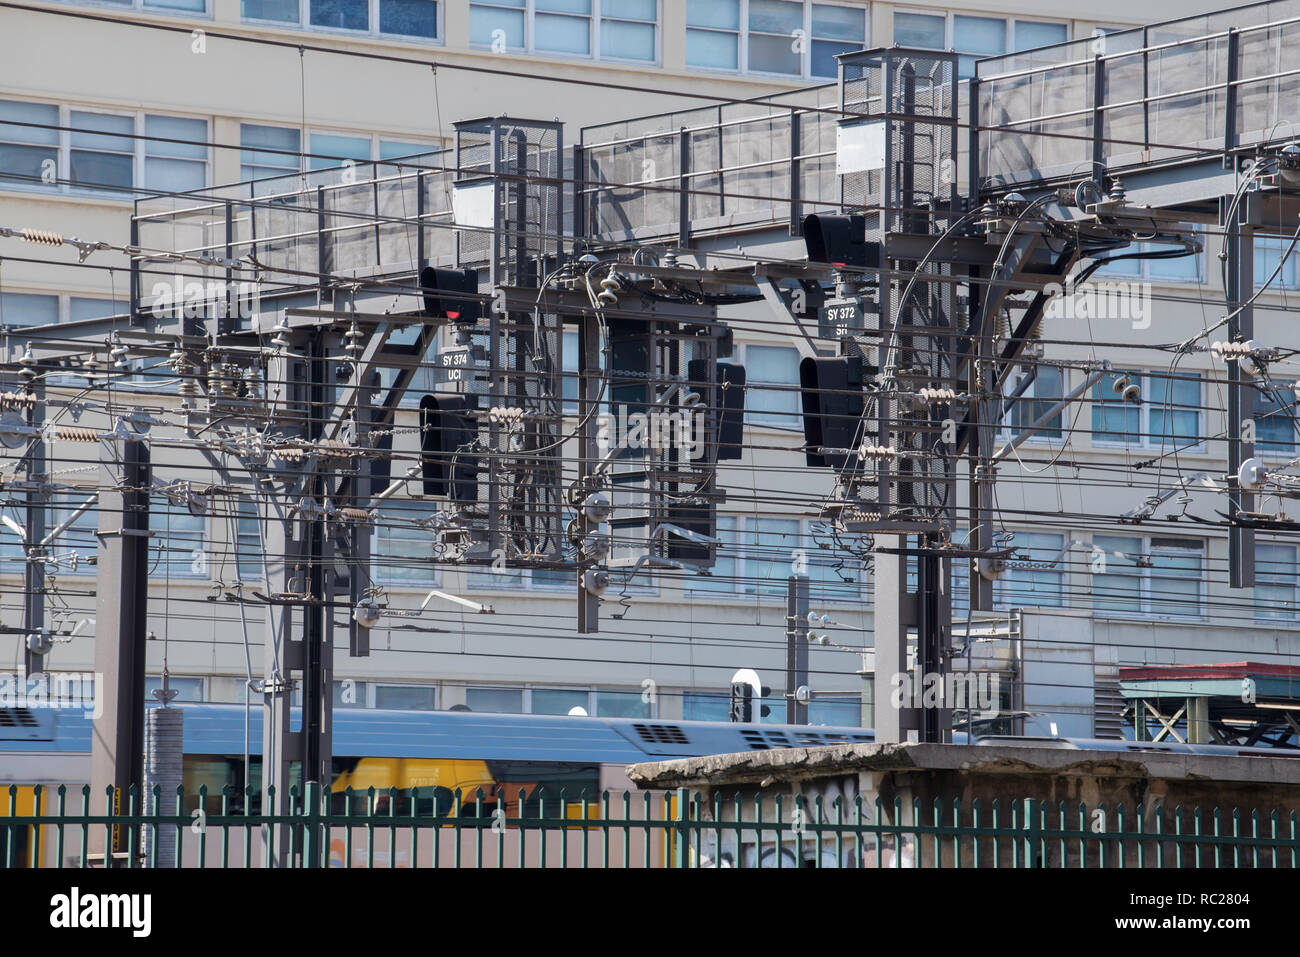 A complex array of cabling wiring and signals across multiple rail lines at the norther approach to Sydney's Central Railway Station in NSW Australia - Stock Image